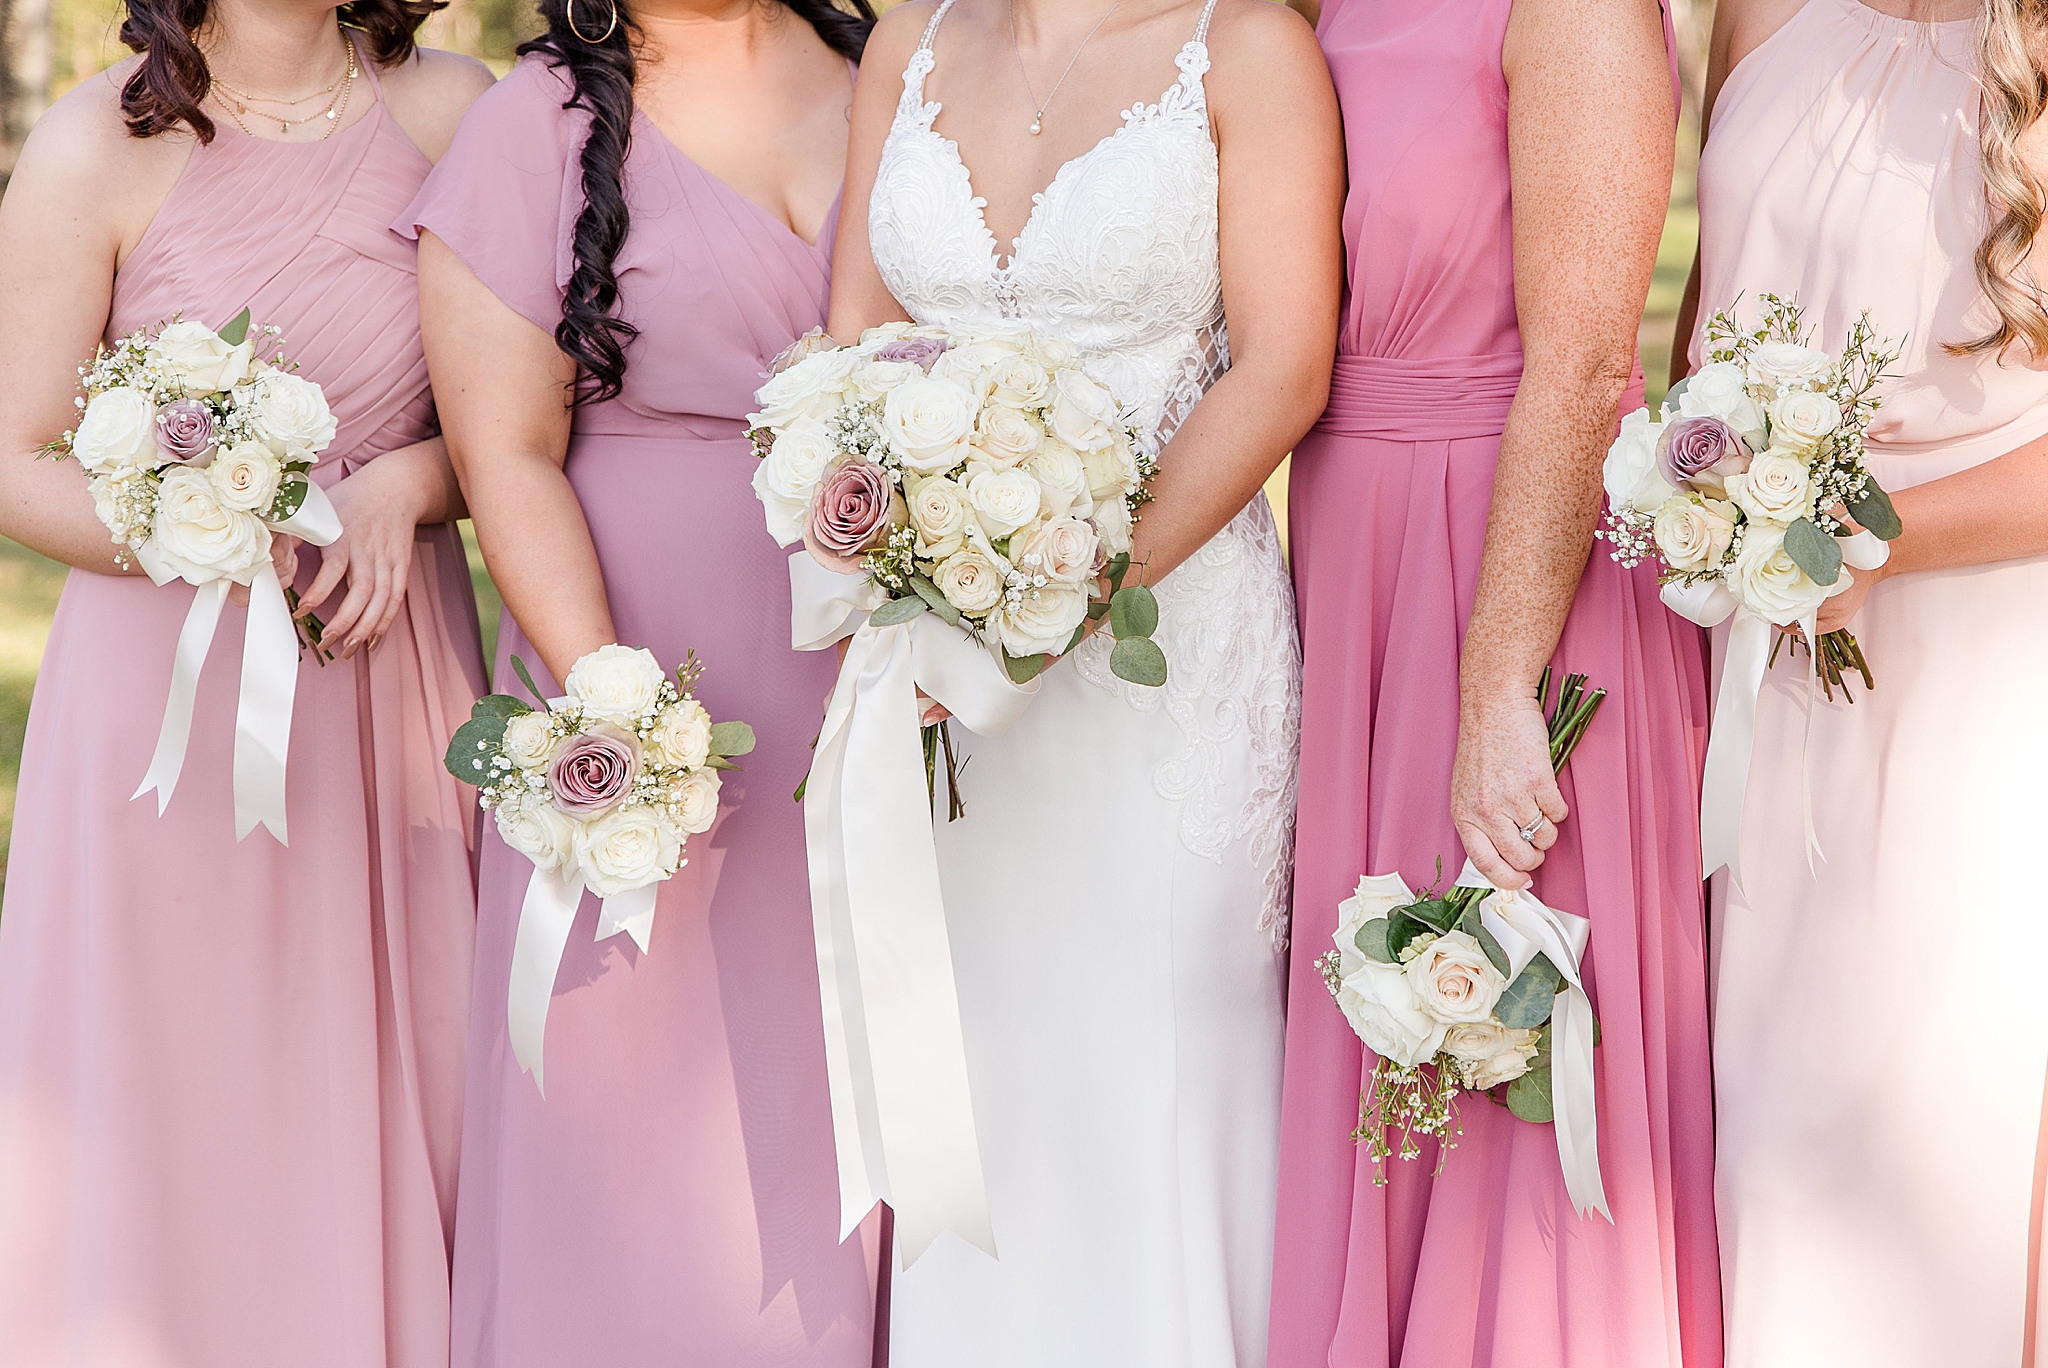 bridesmaids in mismatched pink gowns hold flowers